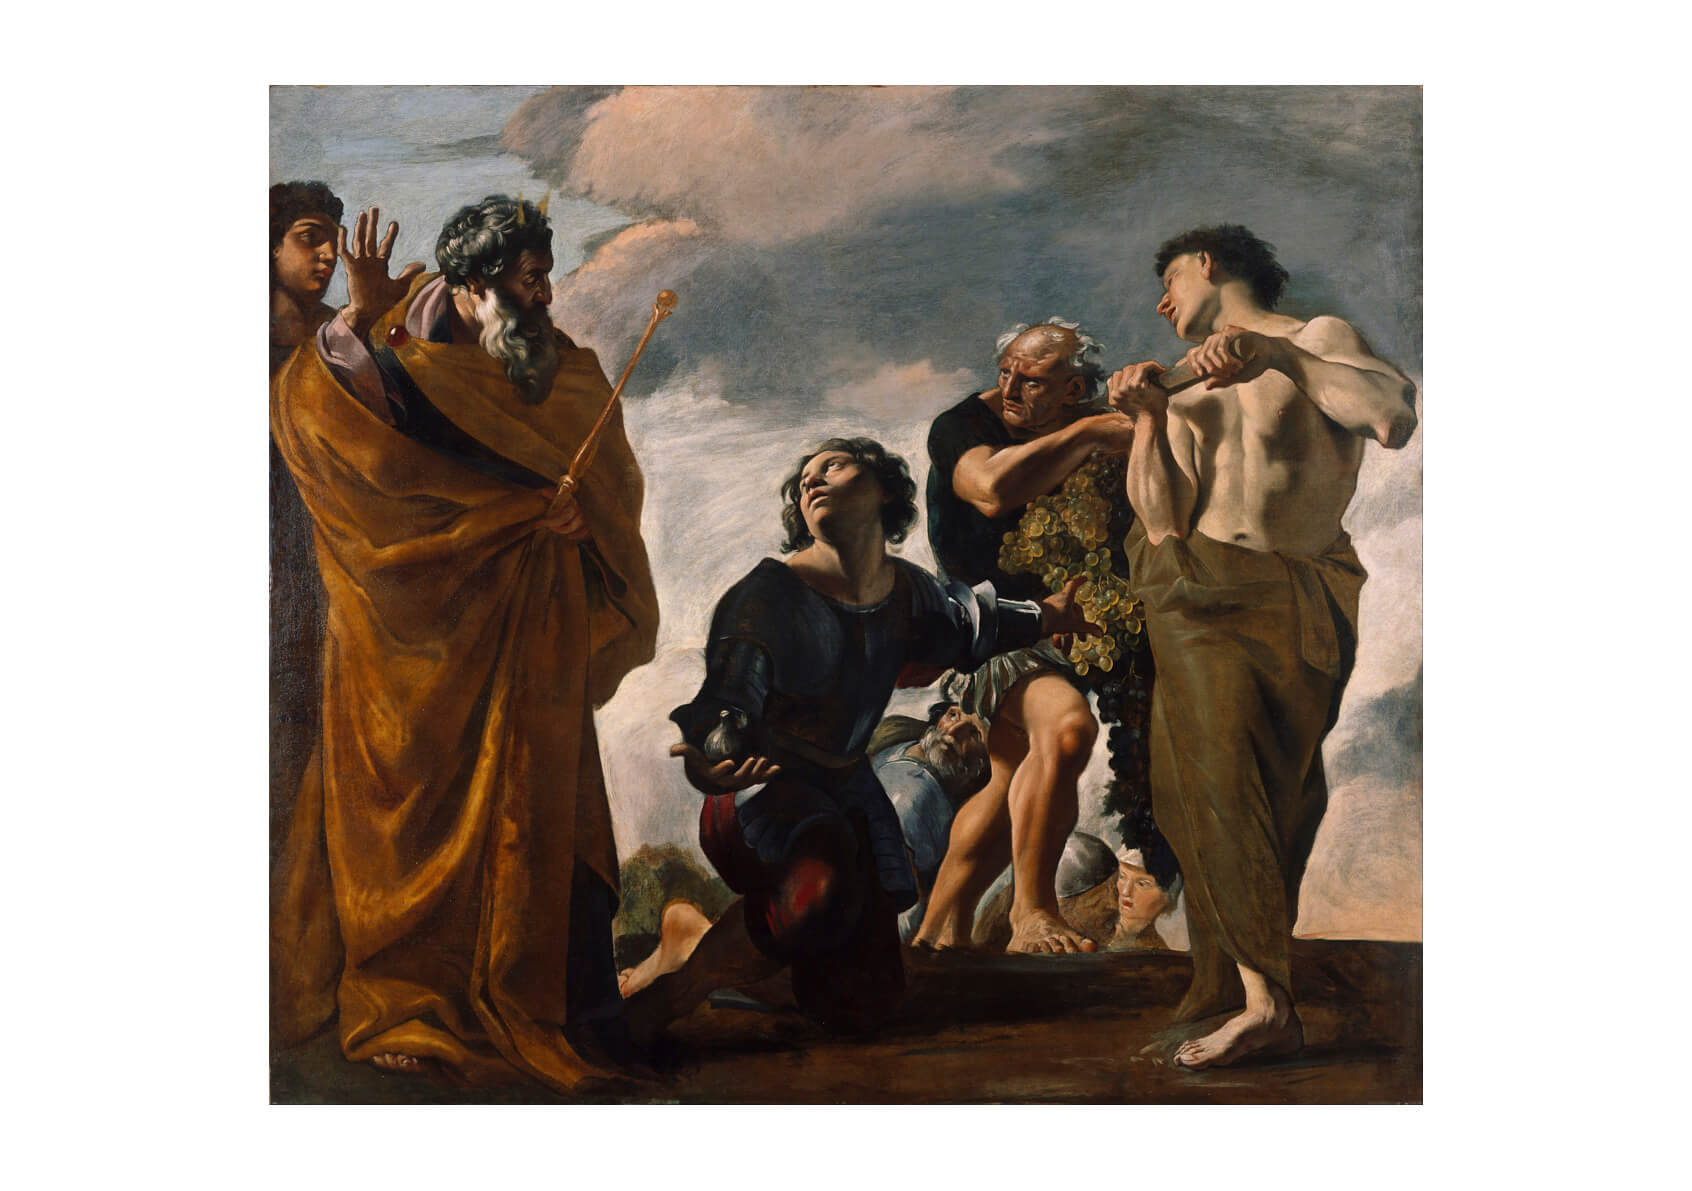 Giovanni Lanfranco - Moses and Messengers From Canaan